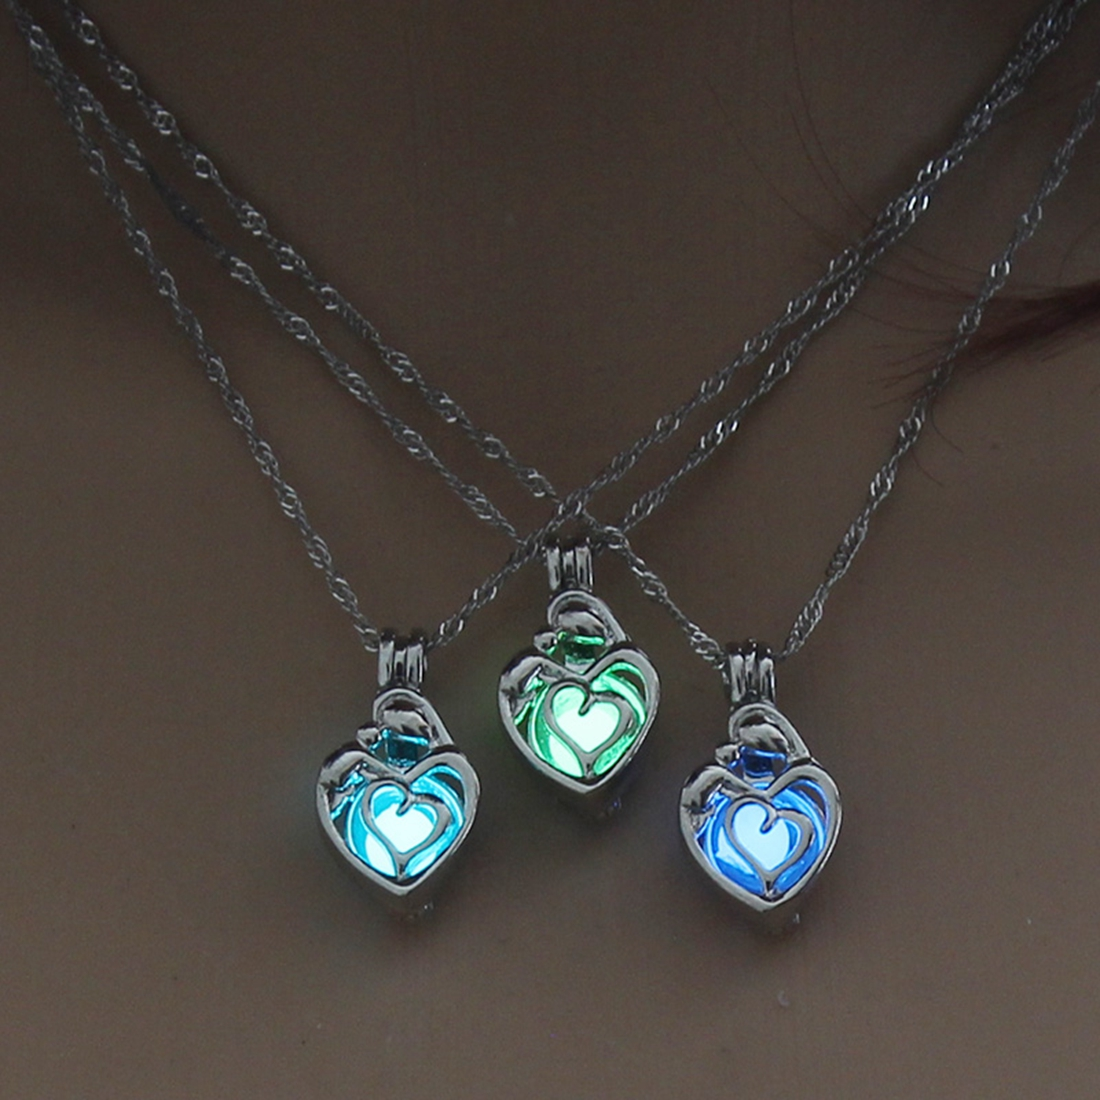 3 Colors Heart Shape Glowing in the Dark Necklace Jewelry